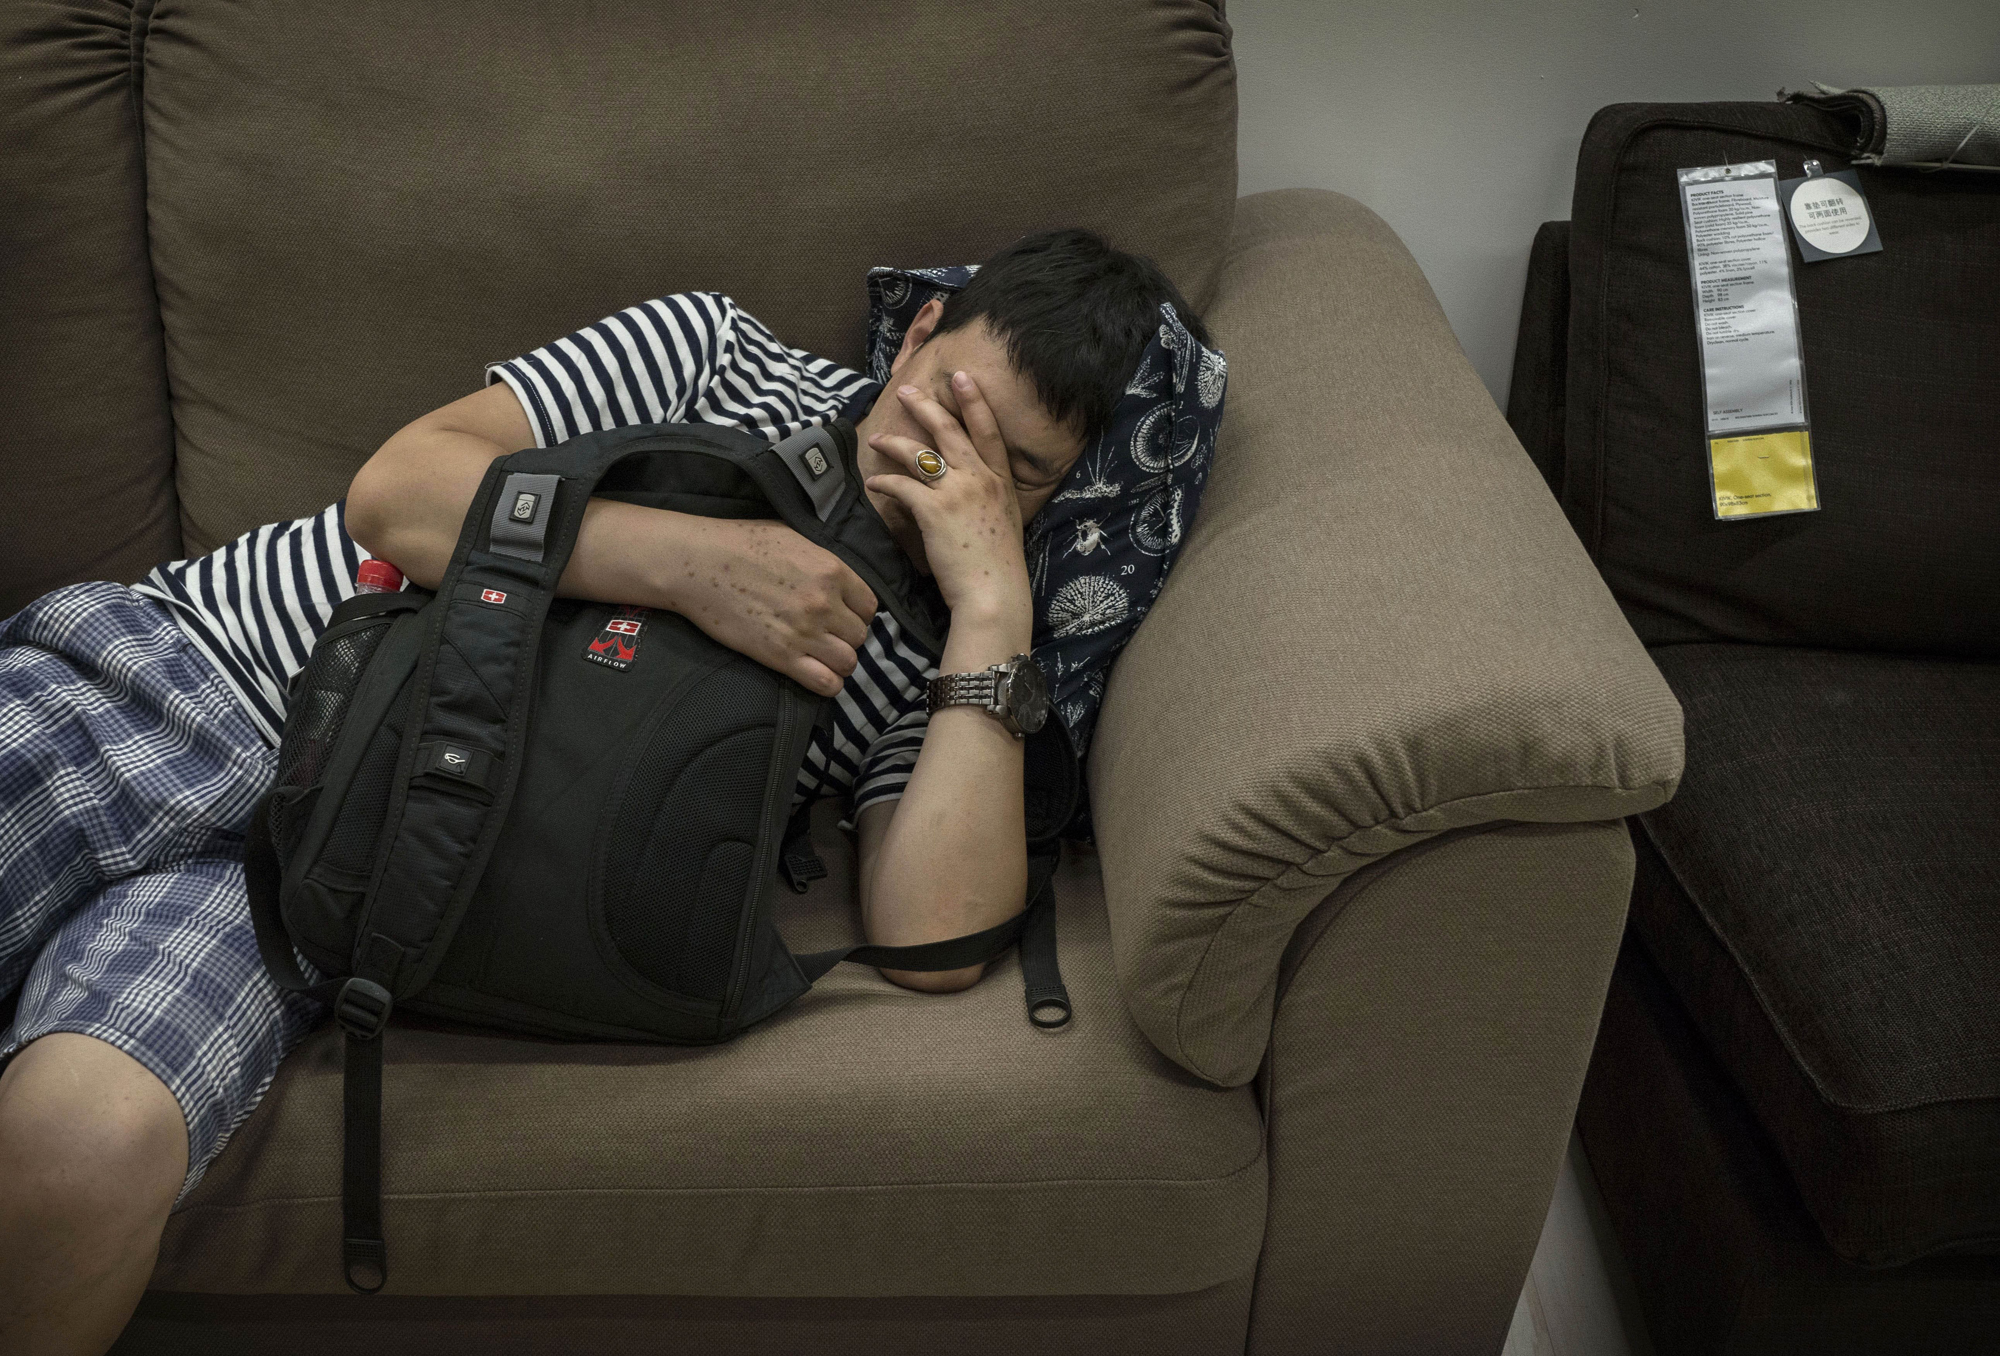 A shopper sleeps on a sofa in the showroom of the IKEA store on July 6, 2014 in Beijing.